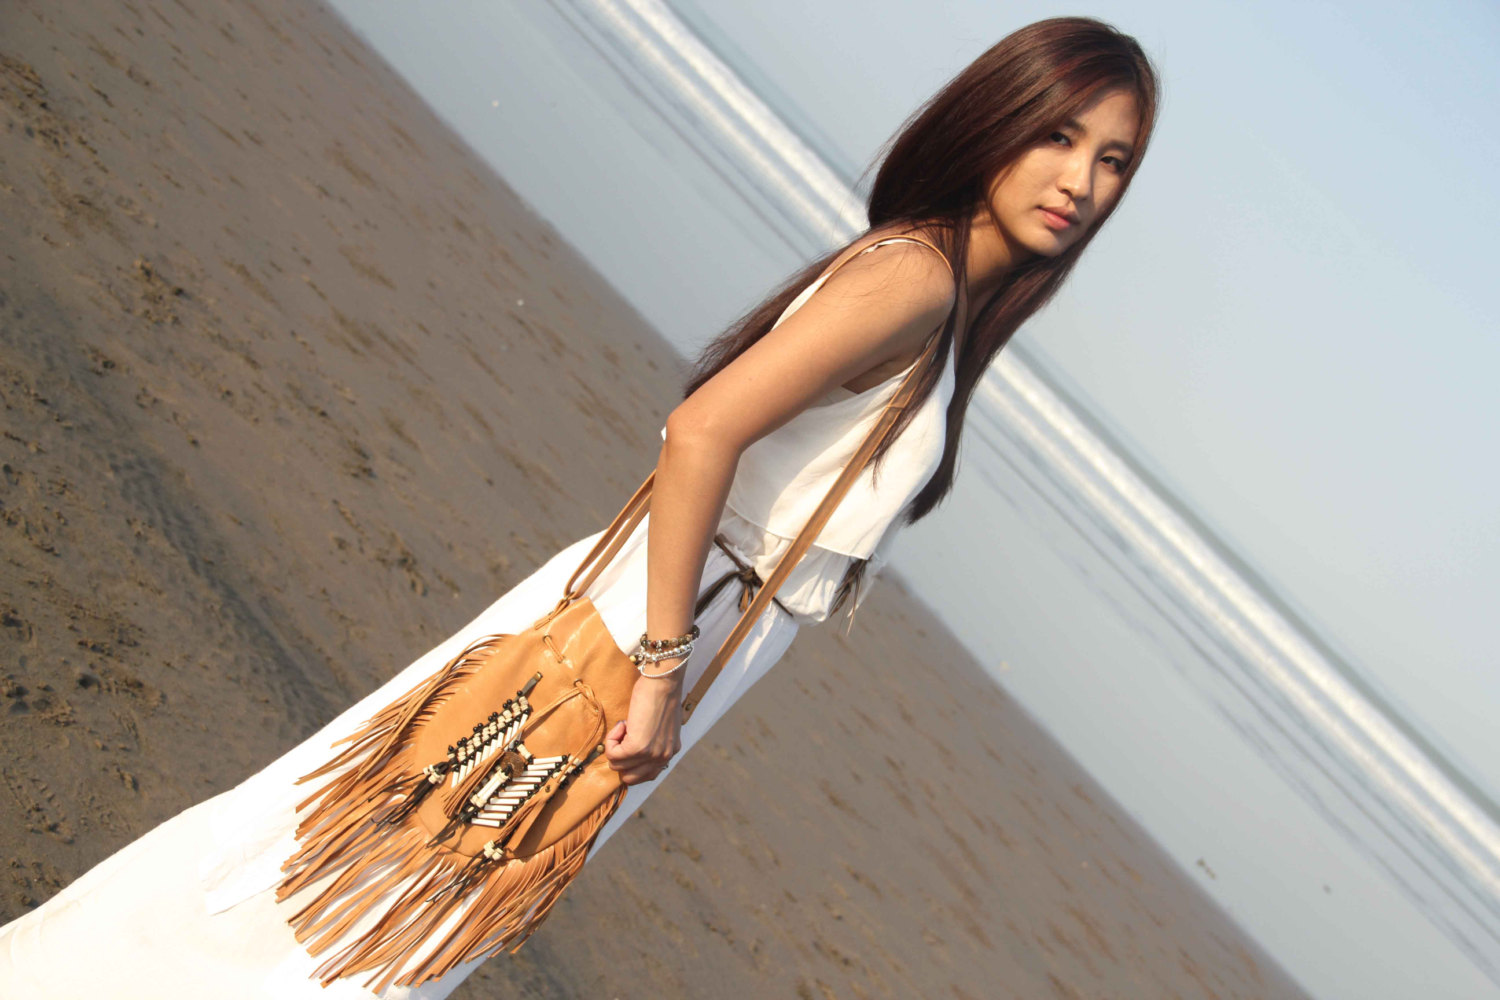 Tan leather bag, indian leather bag, tan bag, leather bag, boho bag, bohemian bag, gypsy bag, festival bag, navajo bag, fringed bag, fringe